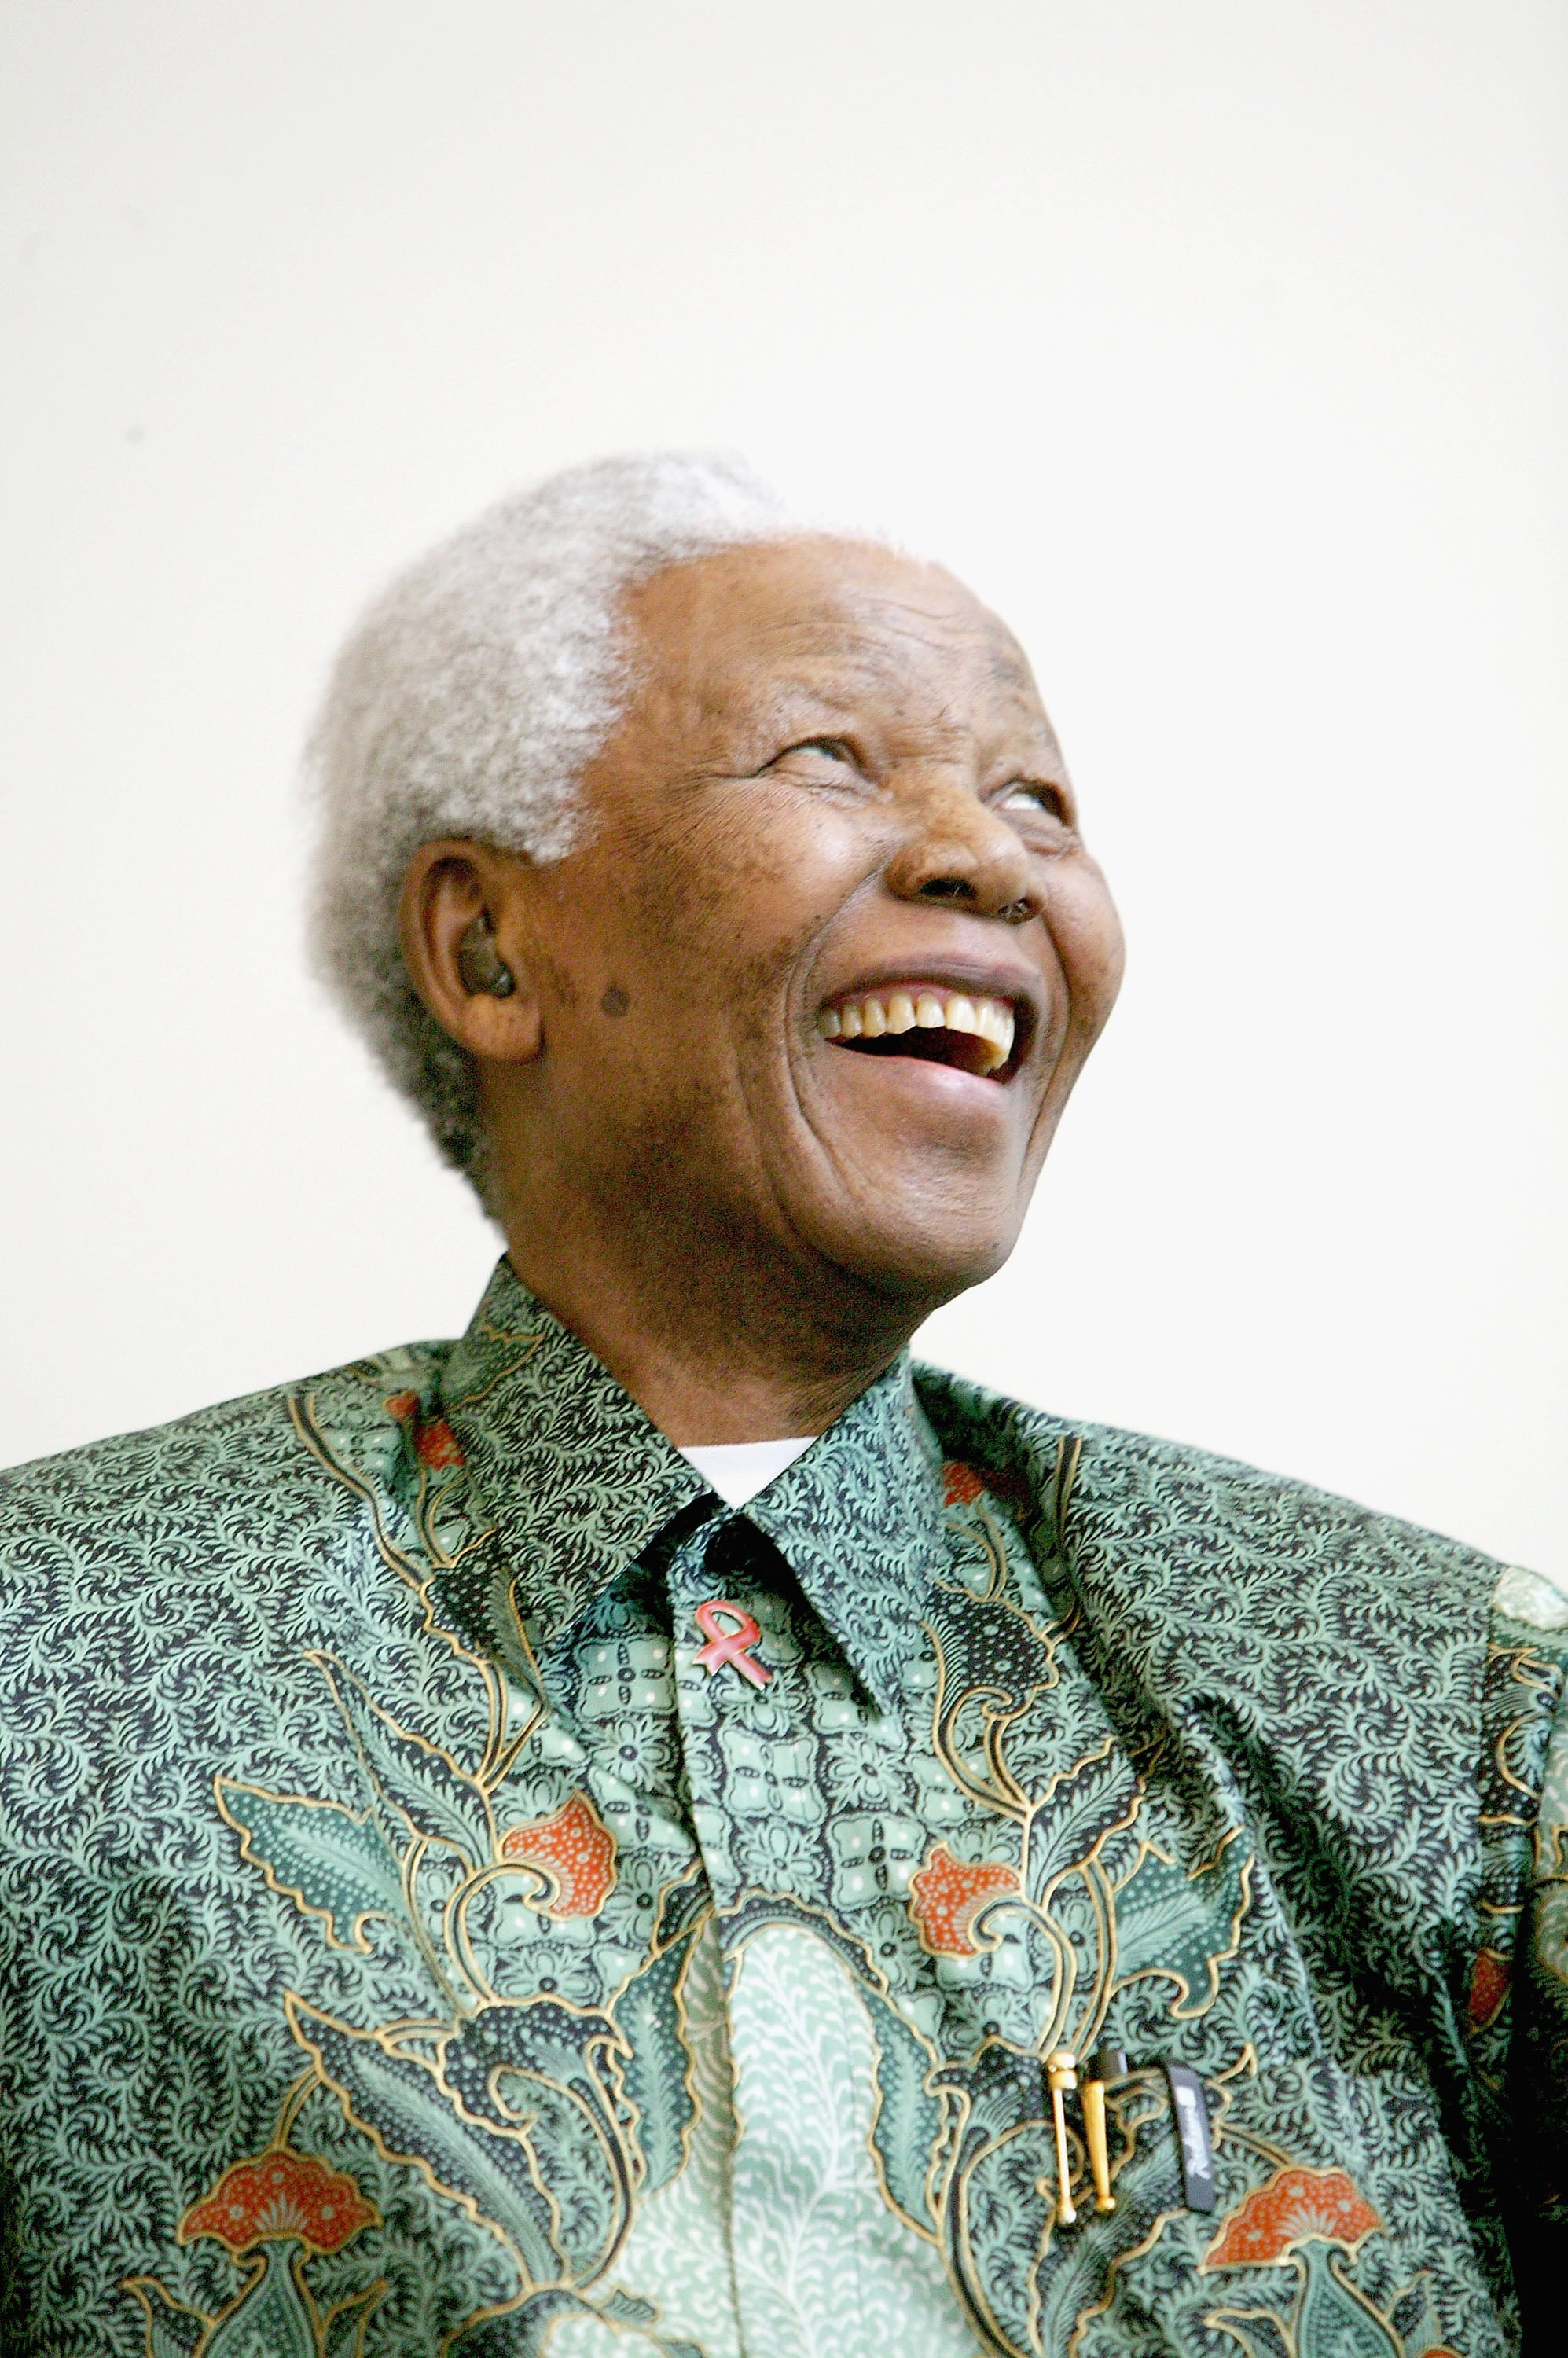 """Nelson Mandela told Oprah in 2001 that being humble is most important: """"If you are humble, you are no threat to anybody. Some behave in a way that dominates others. That's a mistake. If you want the cooperation of humans around you, you must make them feel they are important — and you do that by being genuine and humble. You know that other people have qualities that may be better than your own. Let them express them."""""""